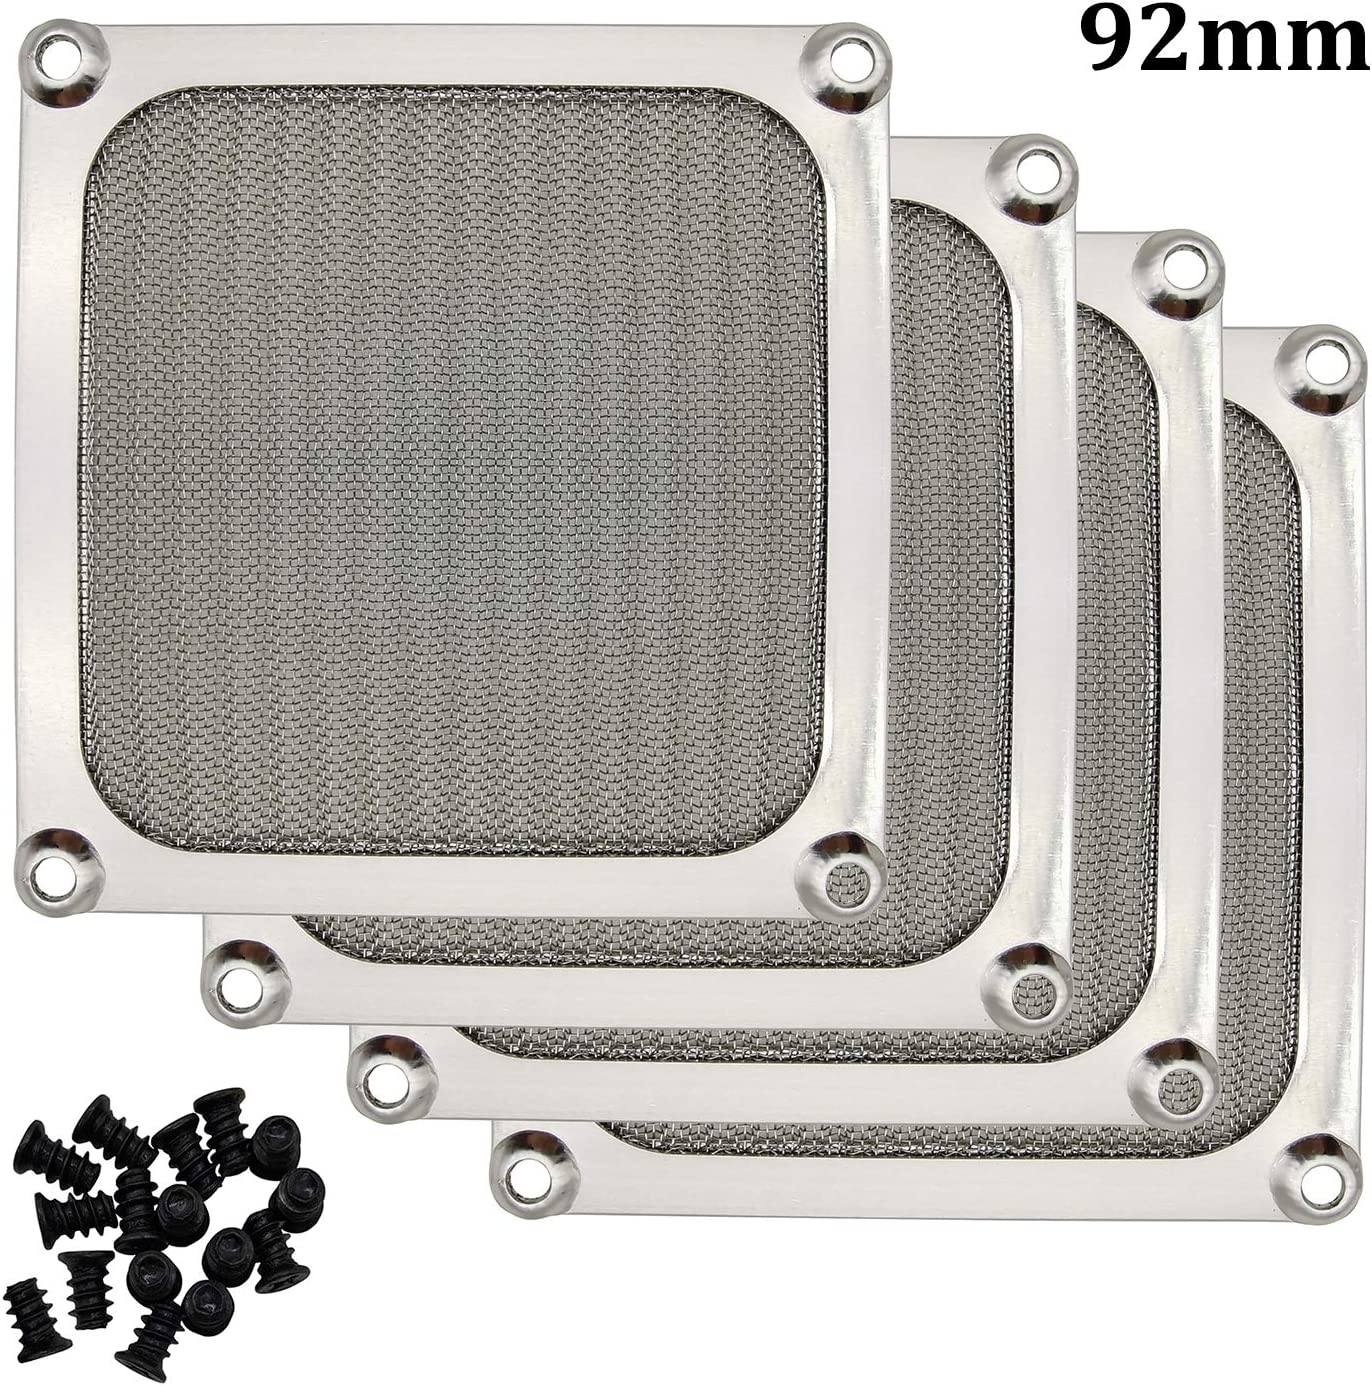 90mm 92mm Computer Fan Filter Grills with Screws, Aluminum Frame Ultra Fine Stainelss Steel Mesh - 4 Pack (Silver)